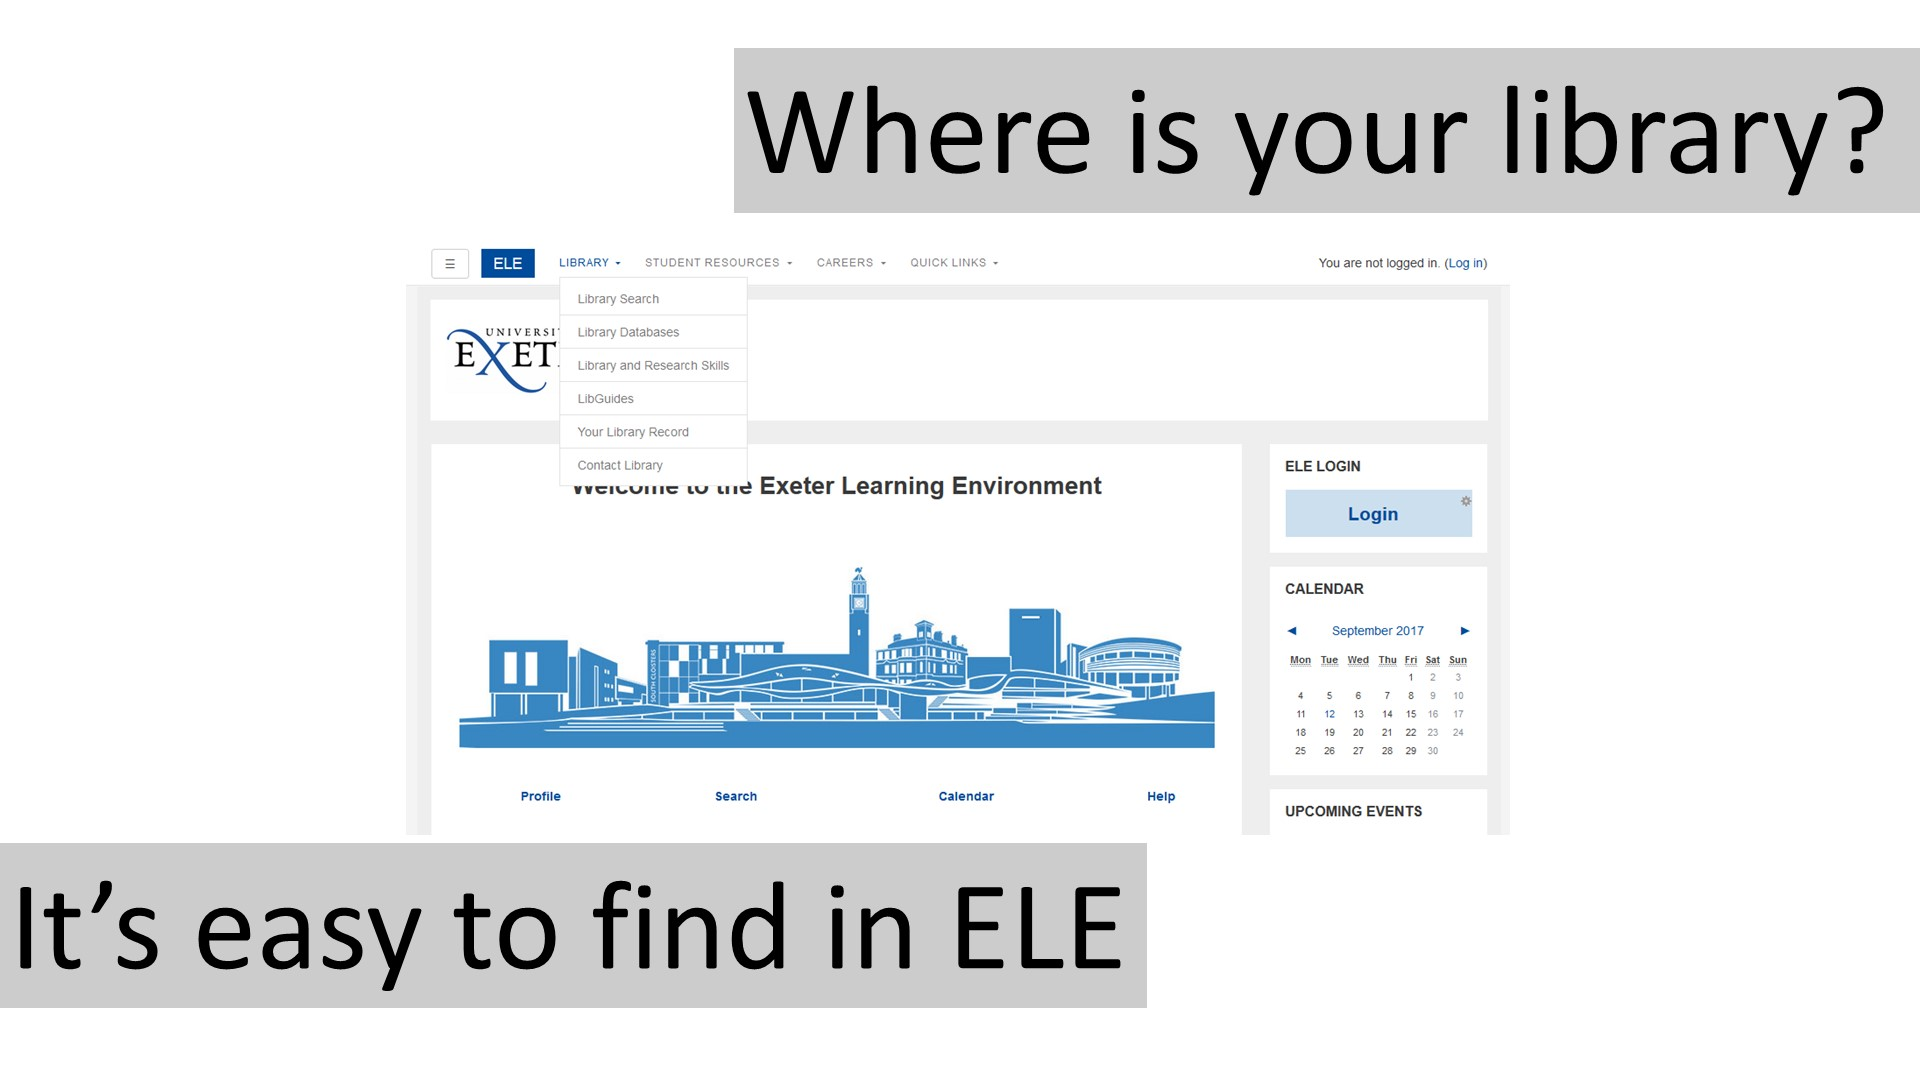 It's easy to find in ELE